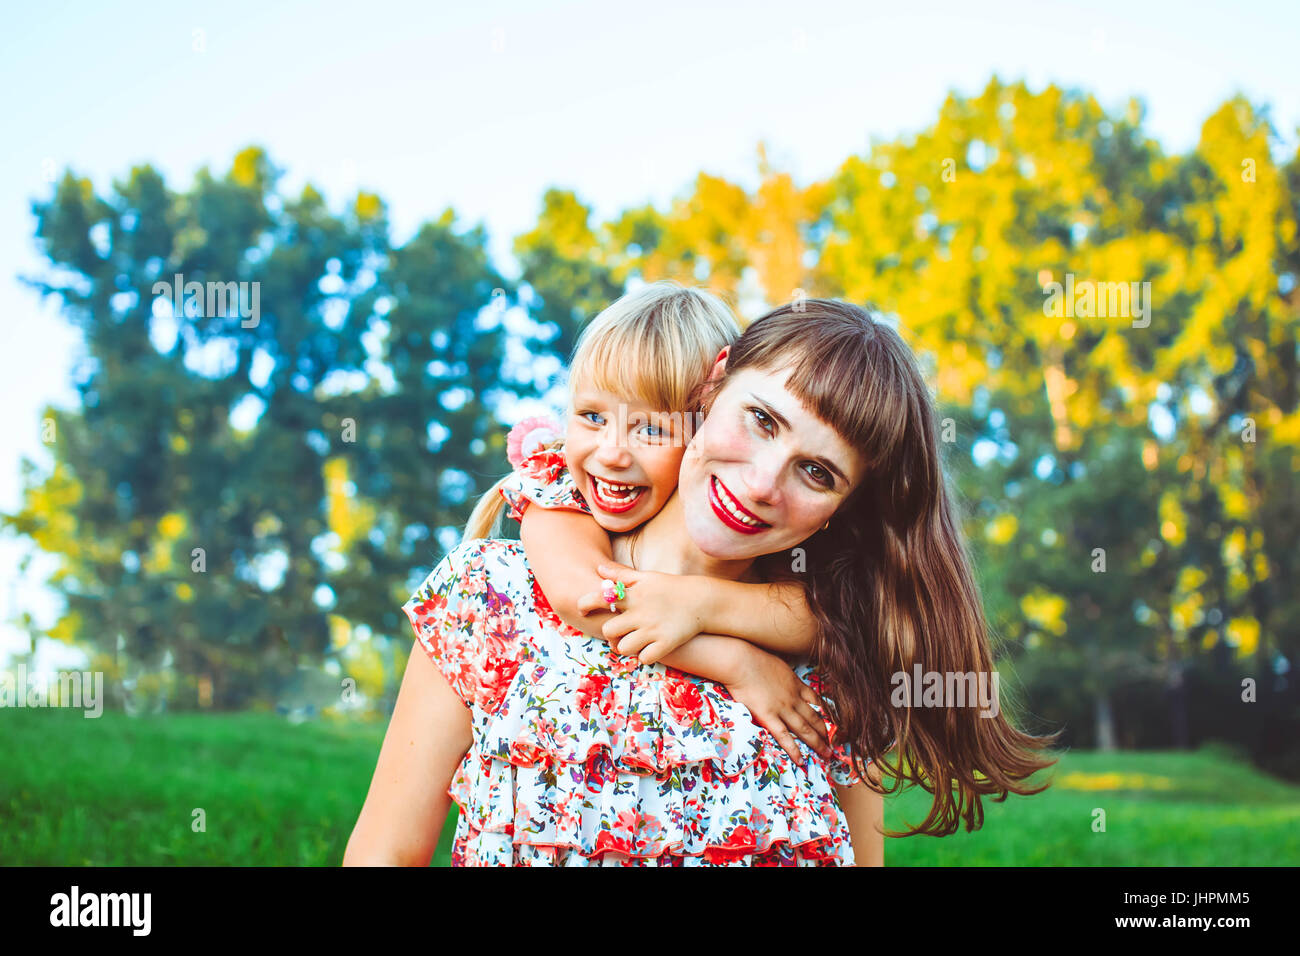 Cute young daughter on a piggy back ride with her mother. Looking at camera. - Stock Image